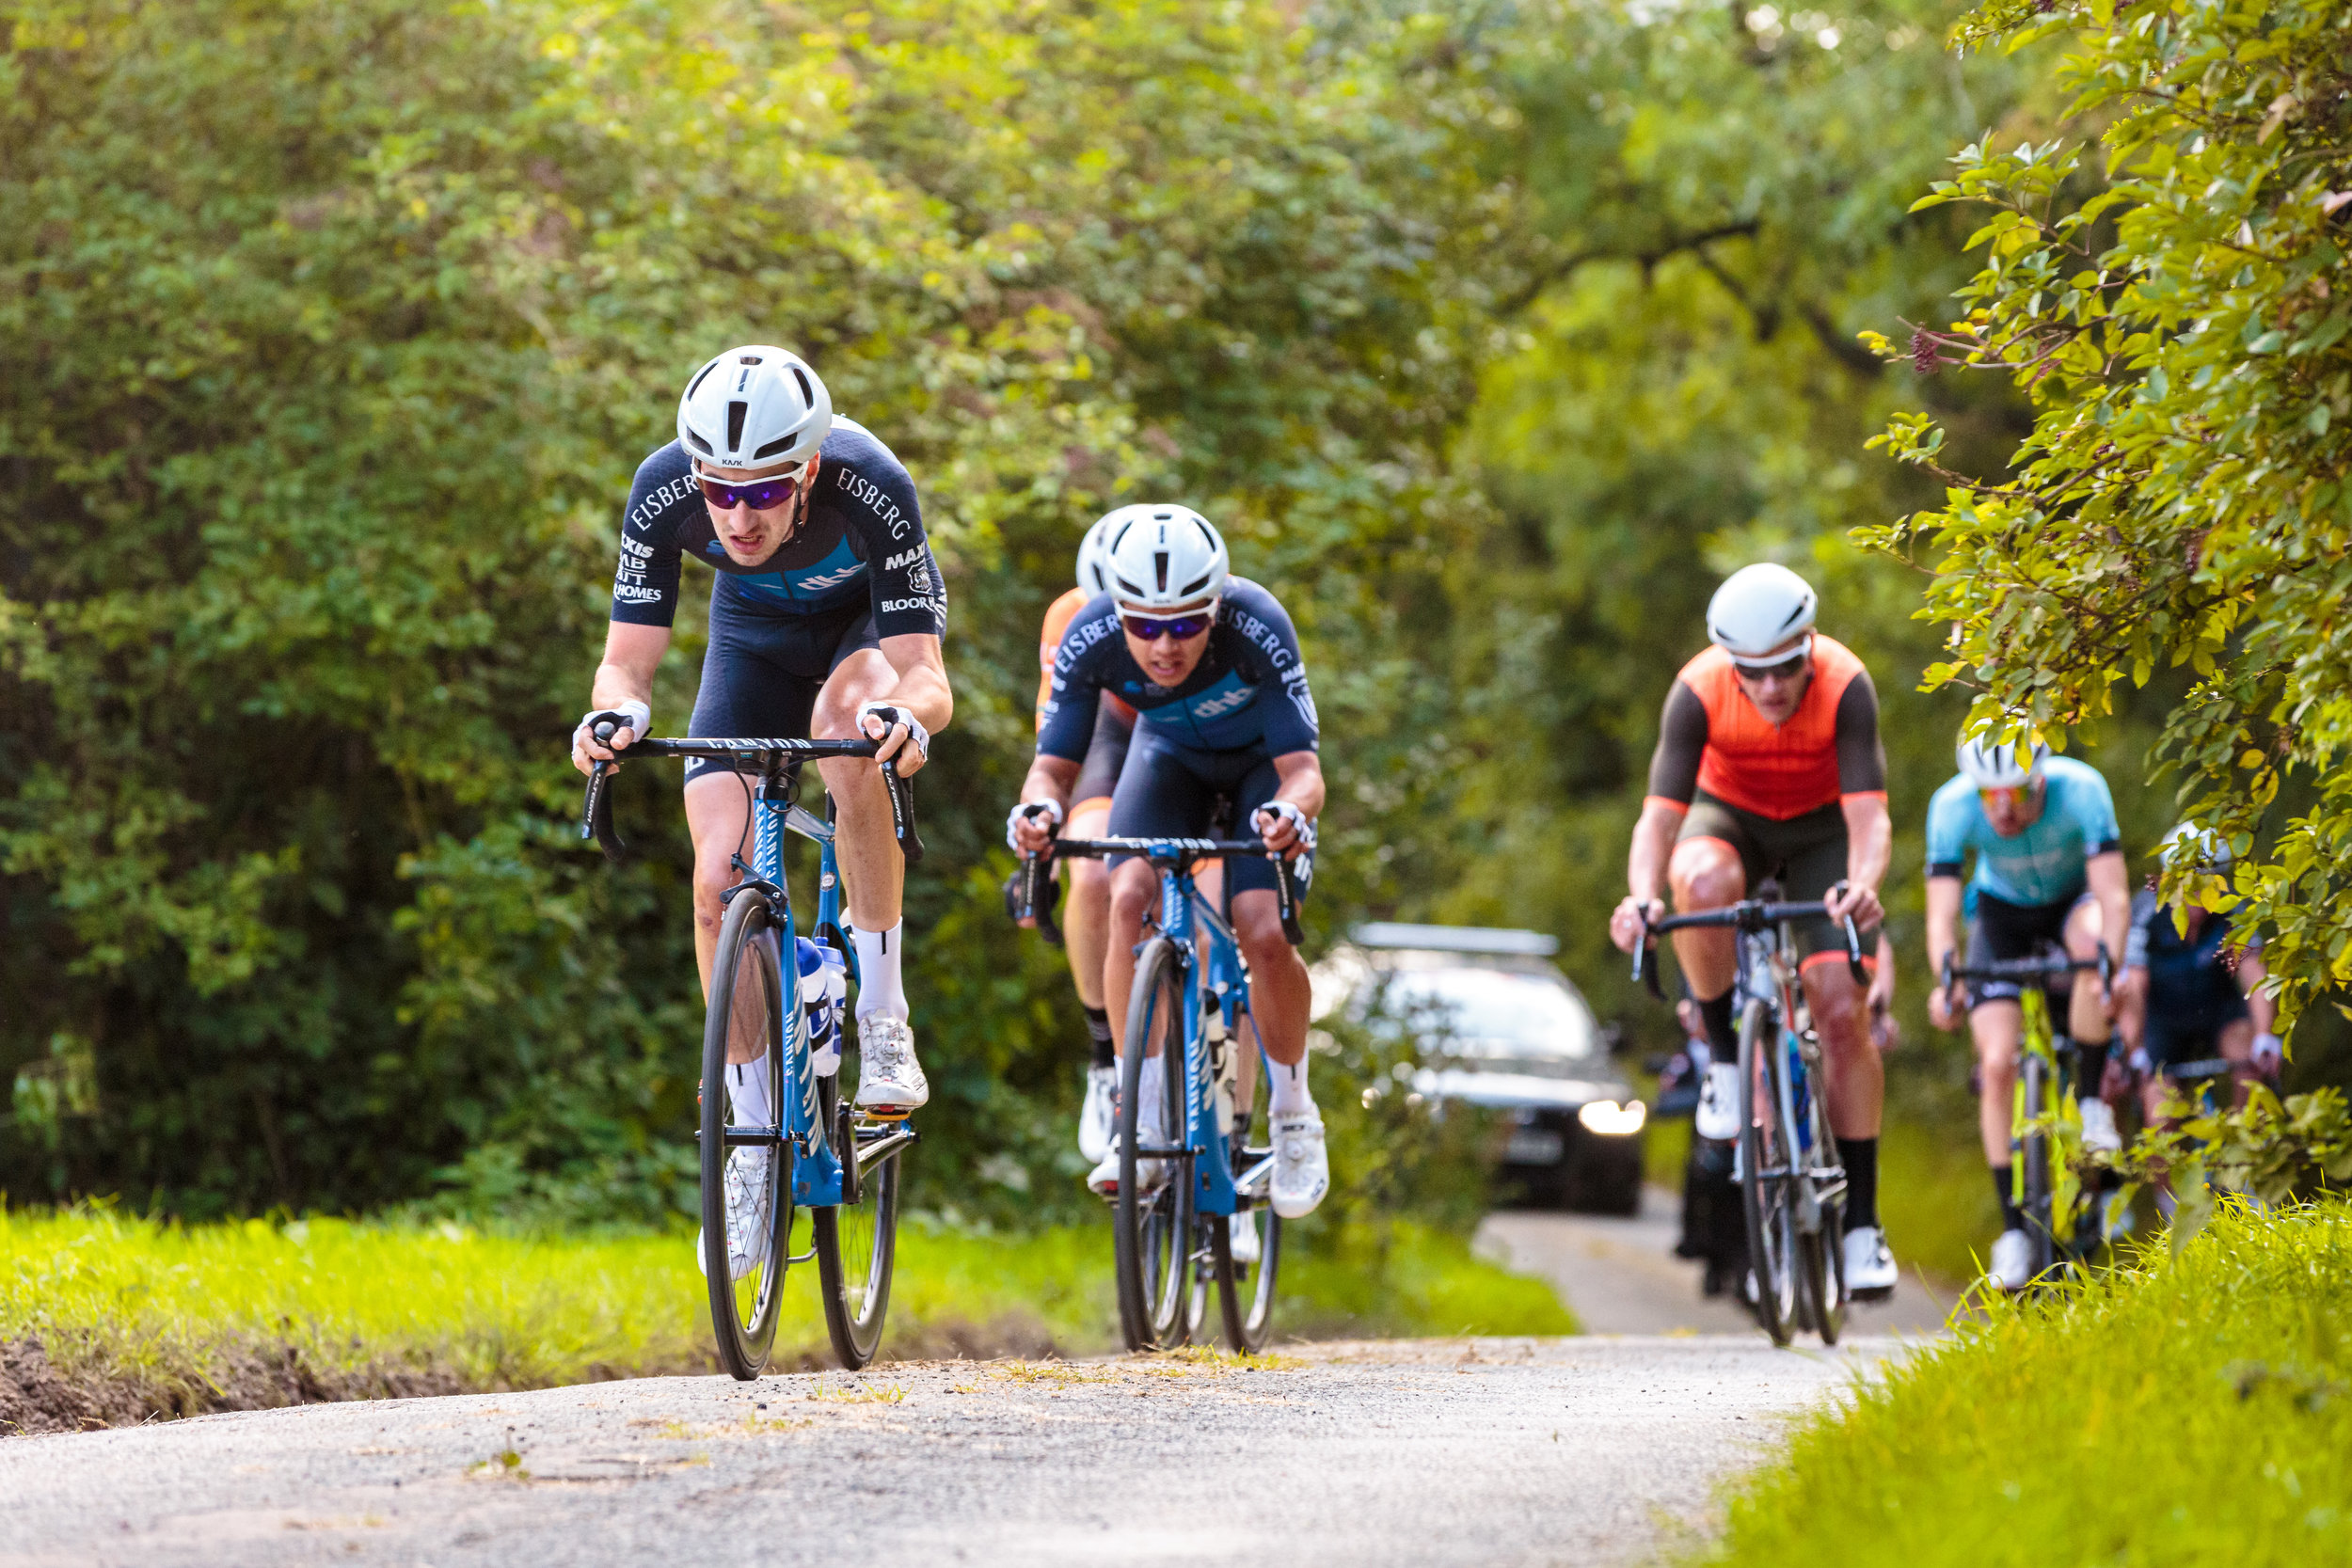 Canyon DHB Presented by Bloor Homes in the Ryedale Grand Prix